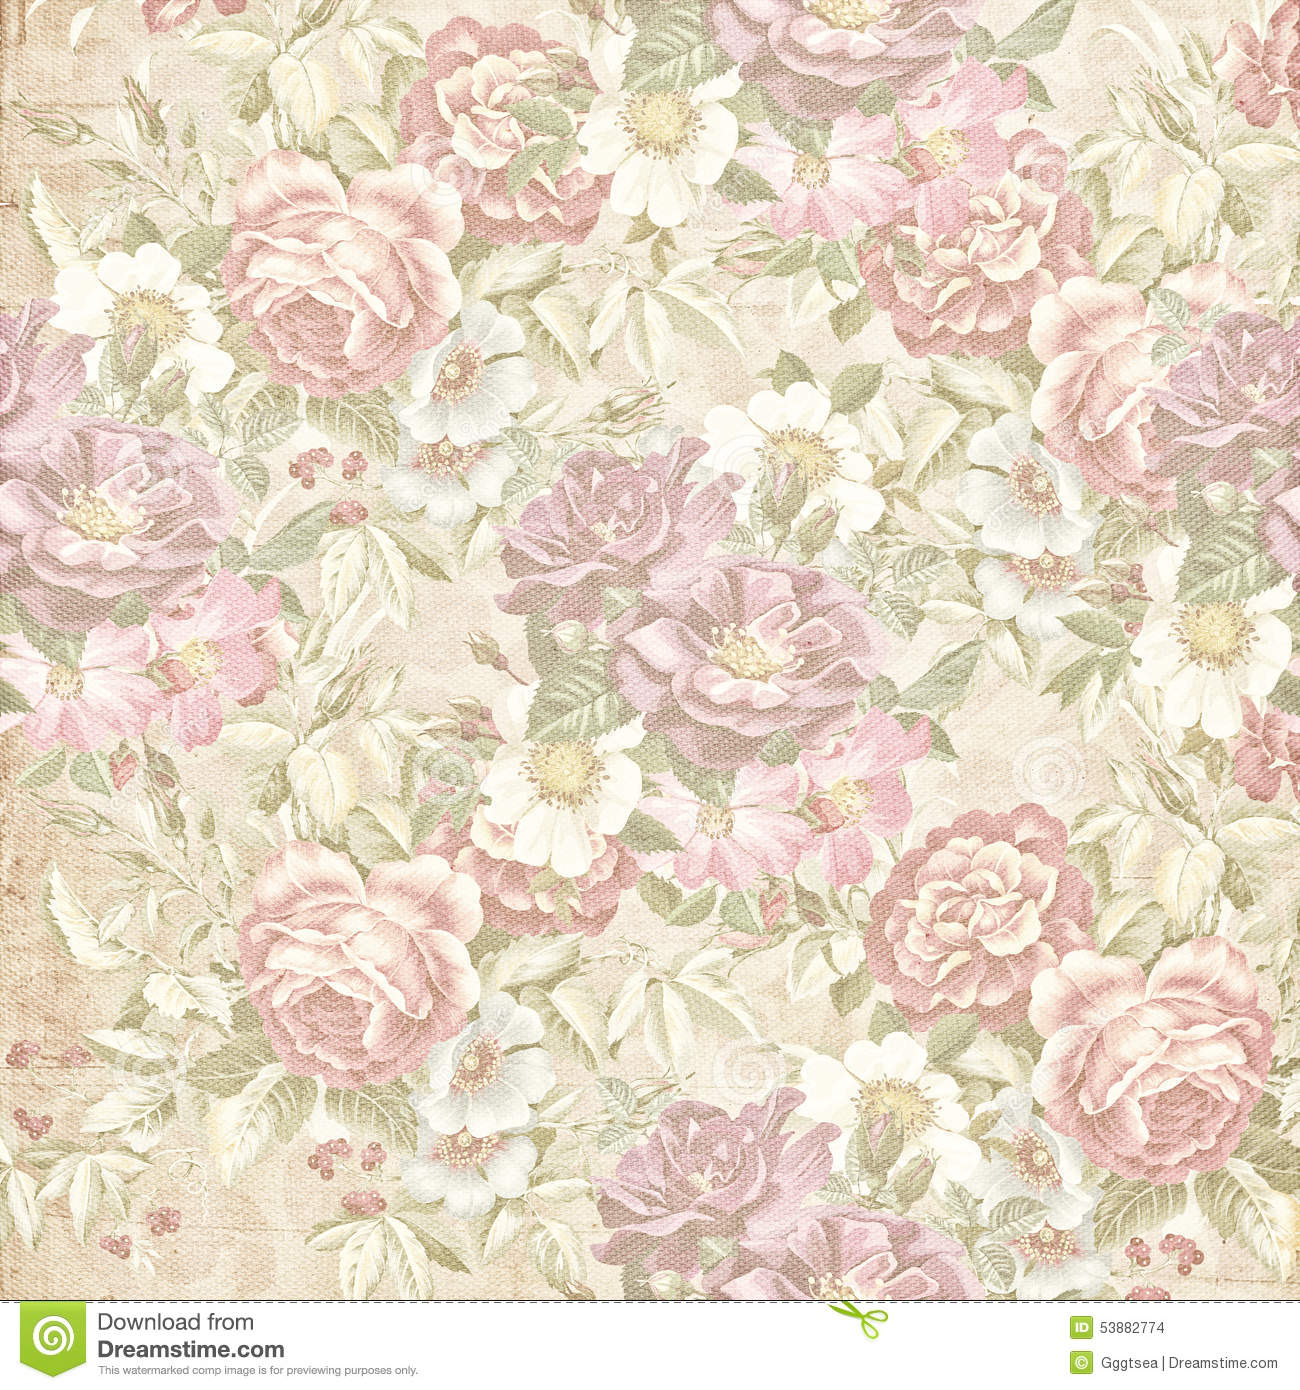 Old Faded Floral Wallpaper Stock Photo. Image Of Floral